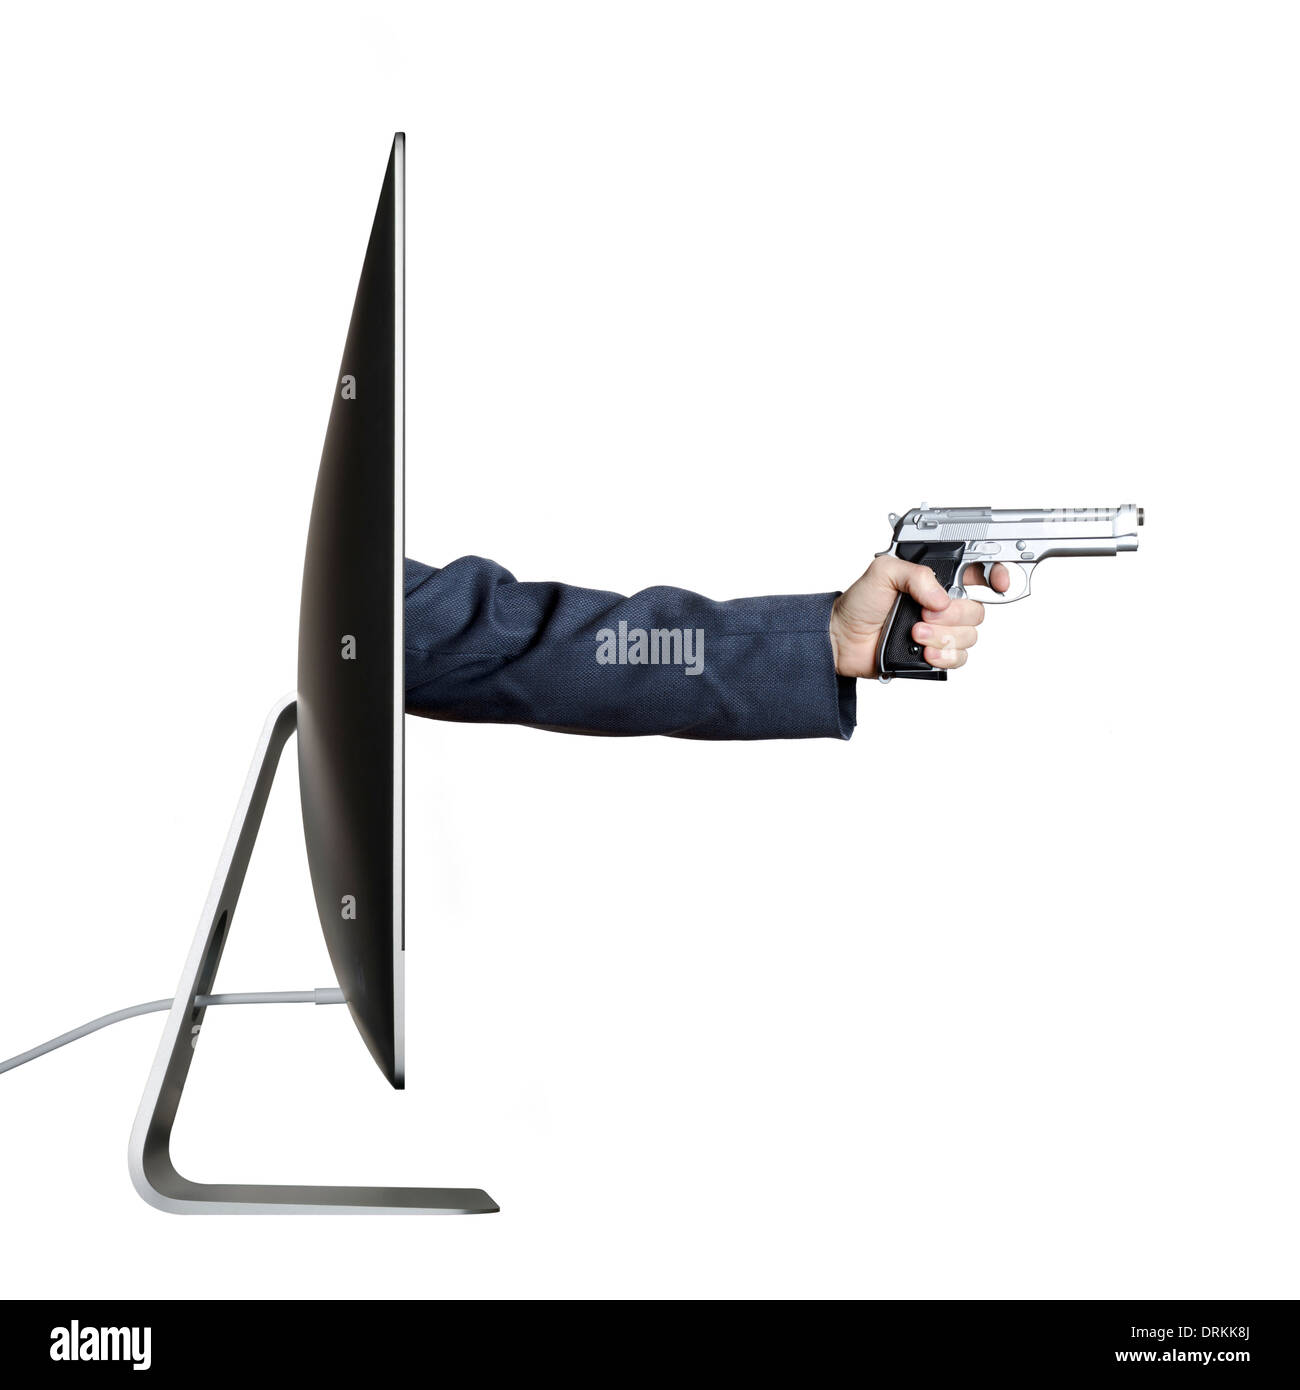 Hand holding a gun, extending out from a computer screen. - Stock Image